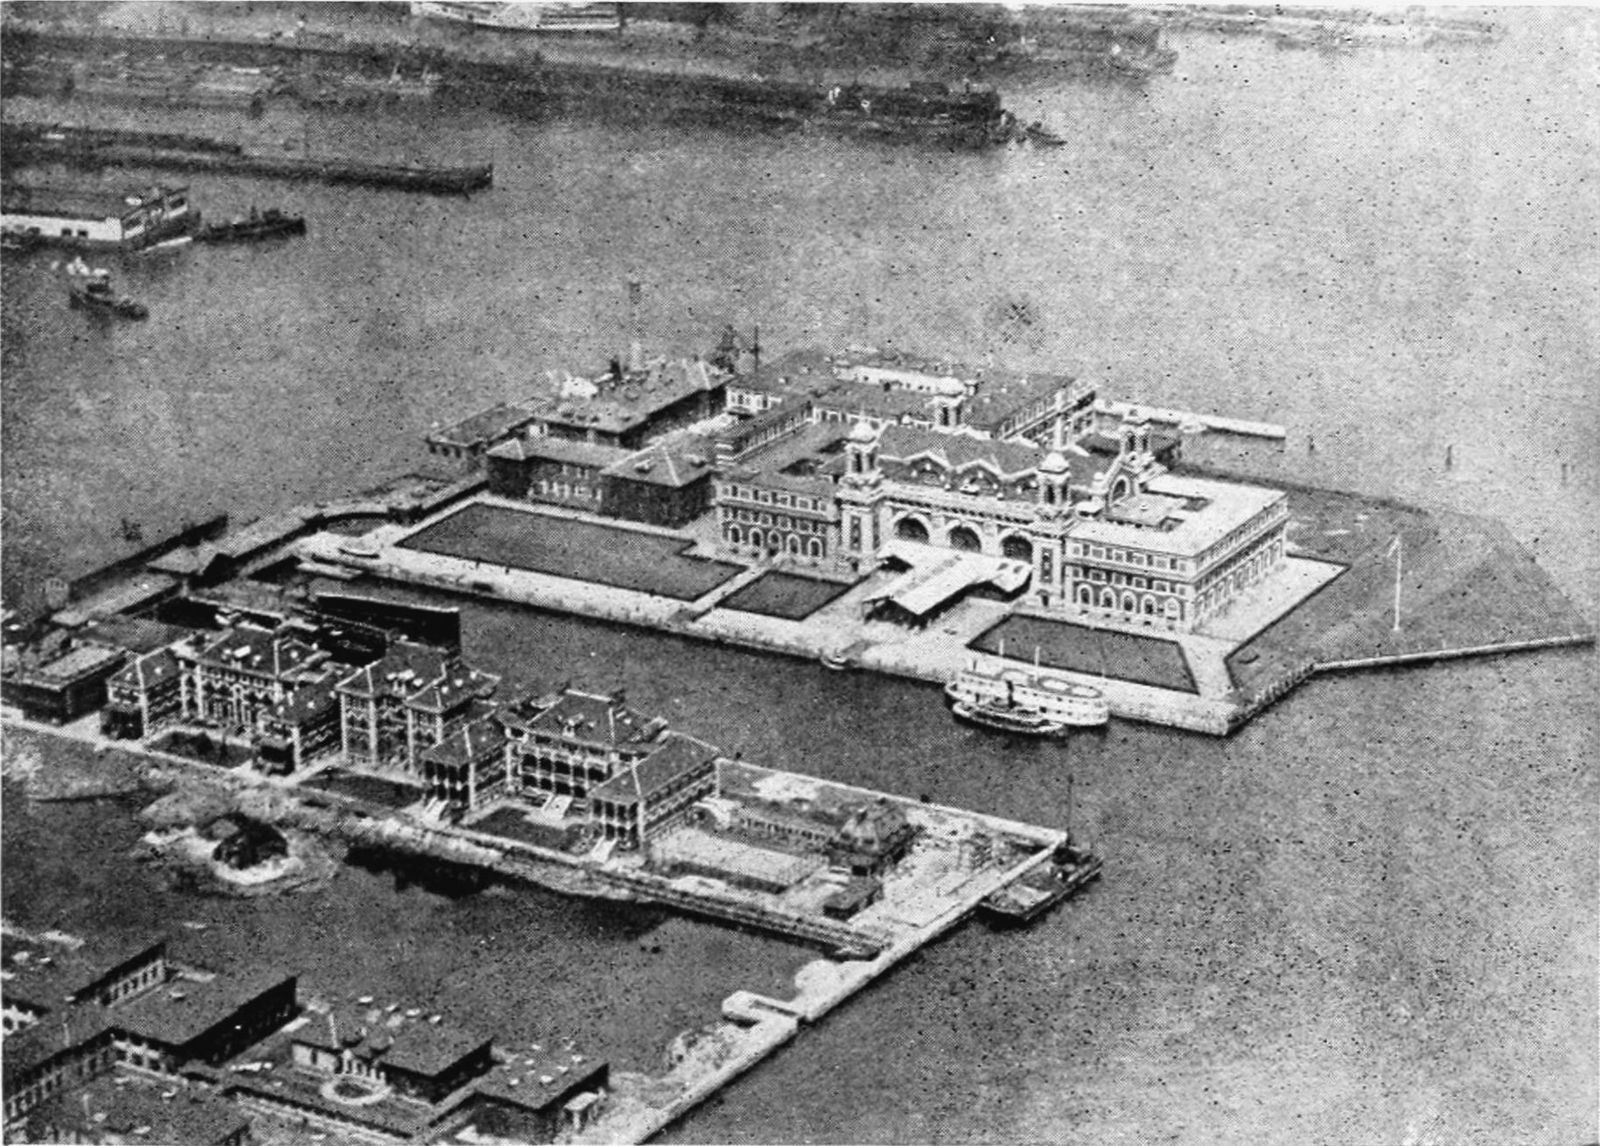 Bird's Eye View of Ellis Island in 1905